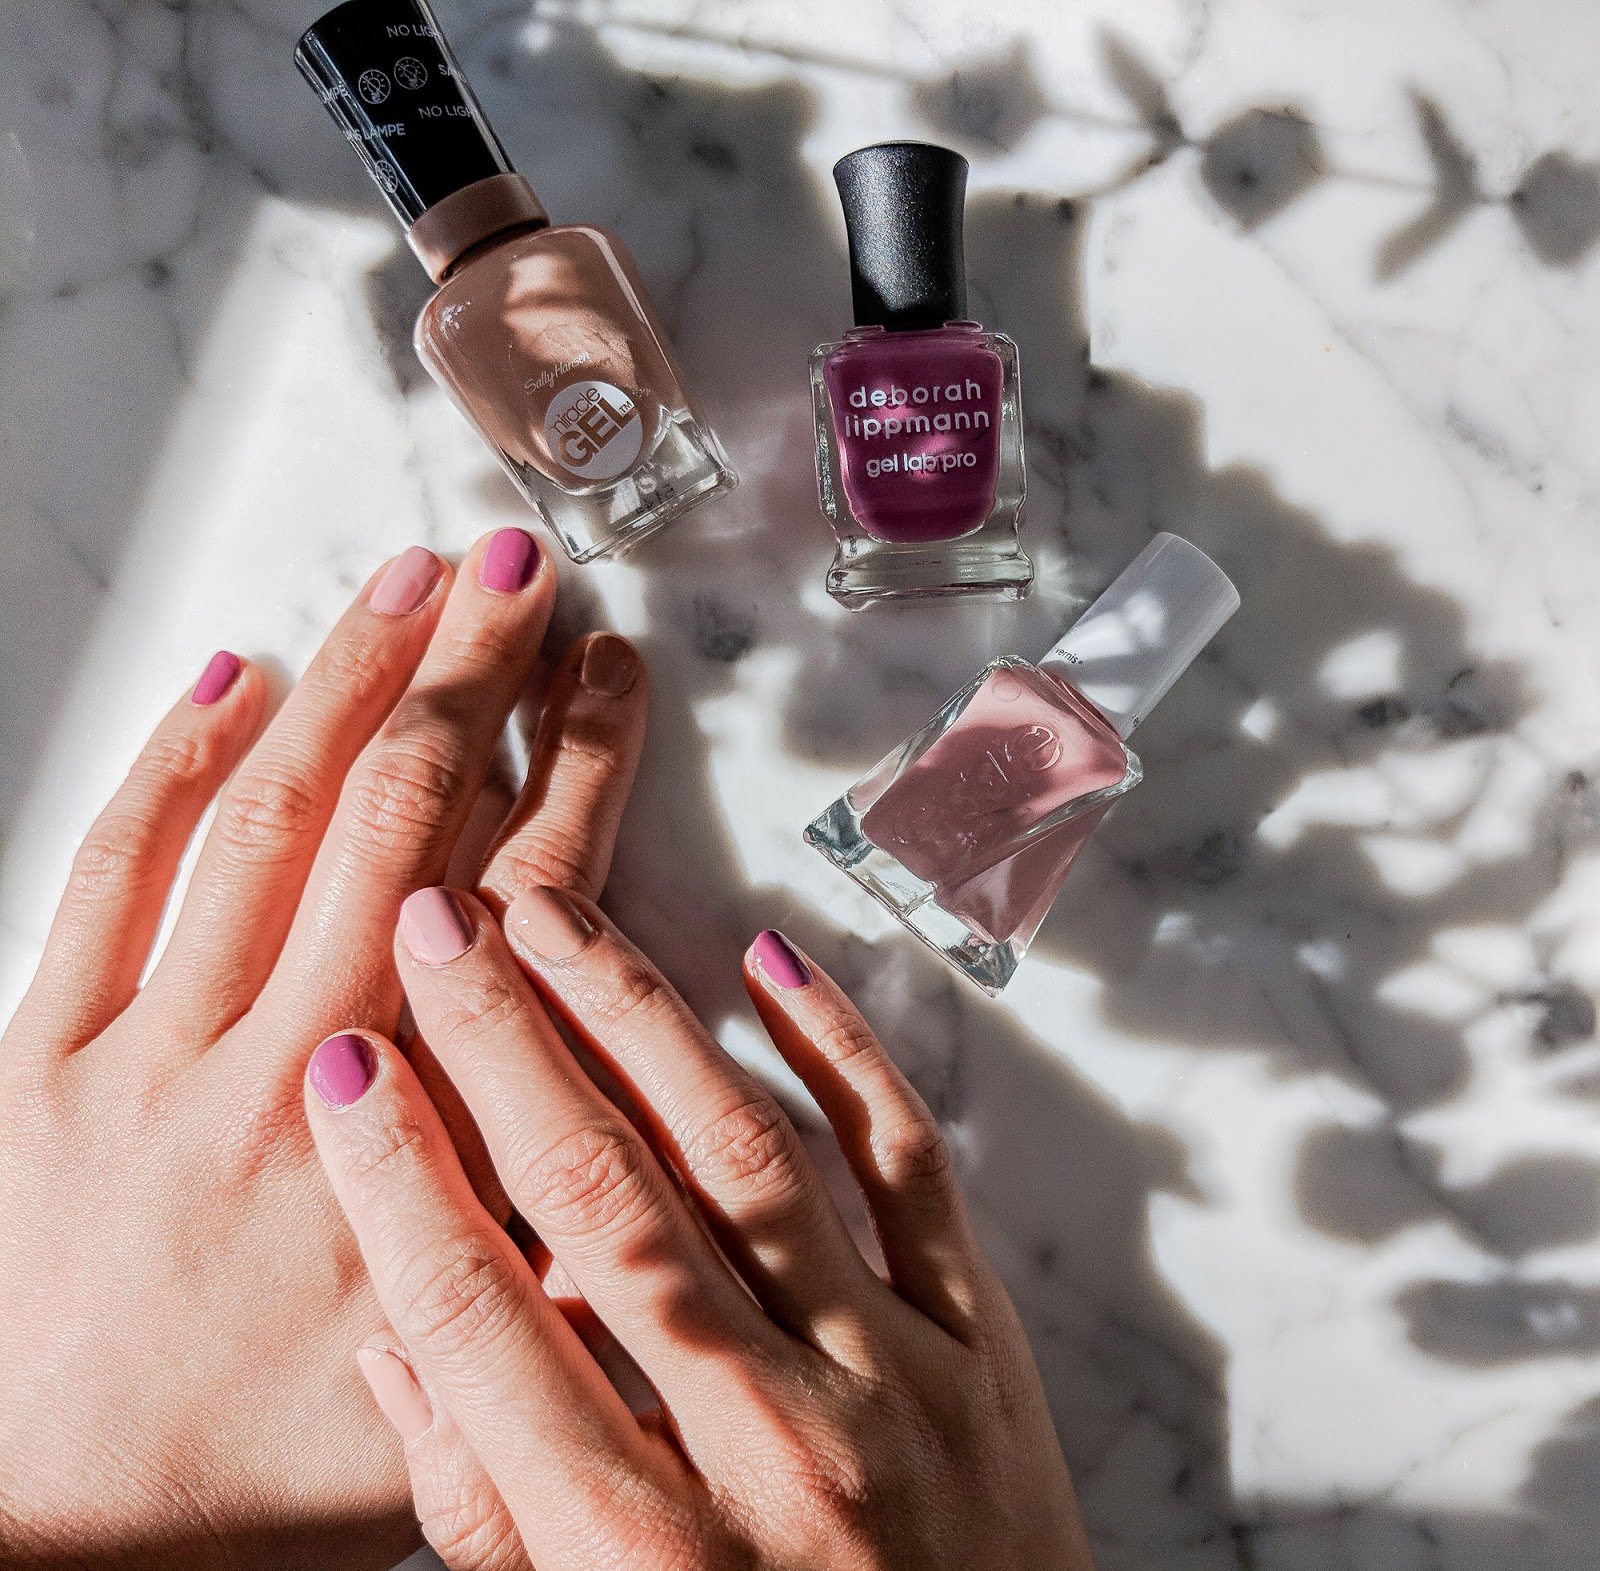 The Best At-Home Gel Nail Polish